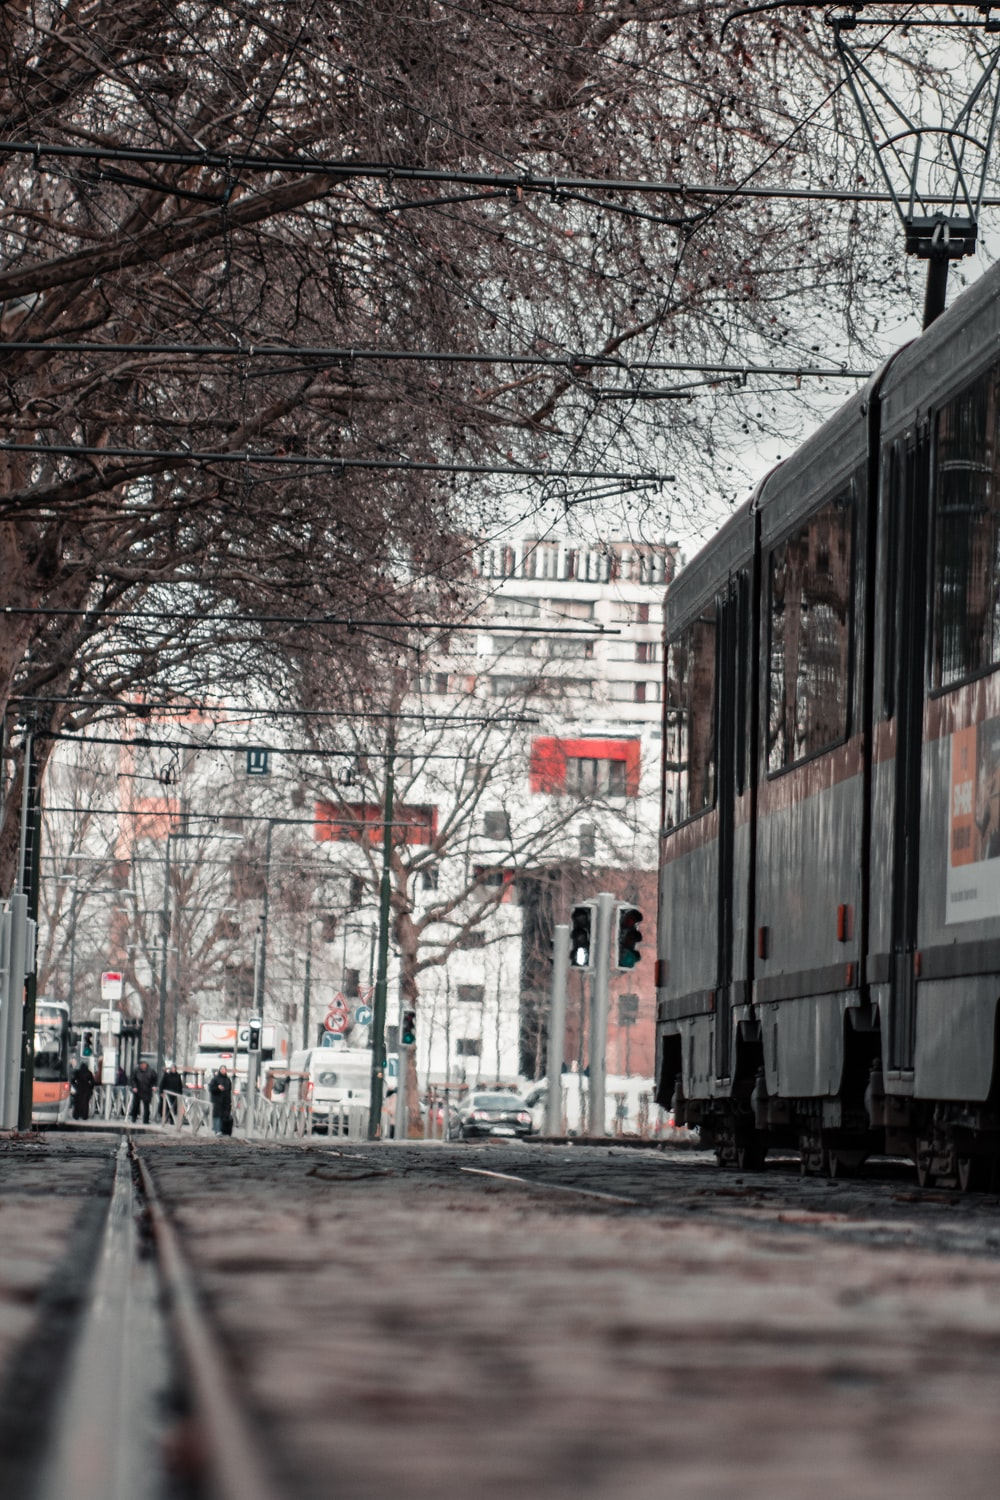 white and red train near bare trees during daytime